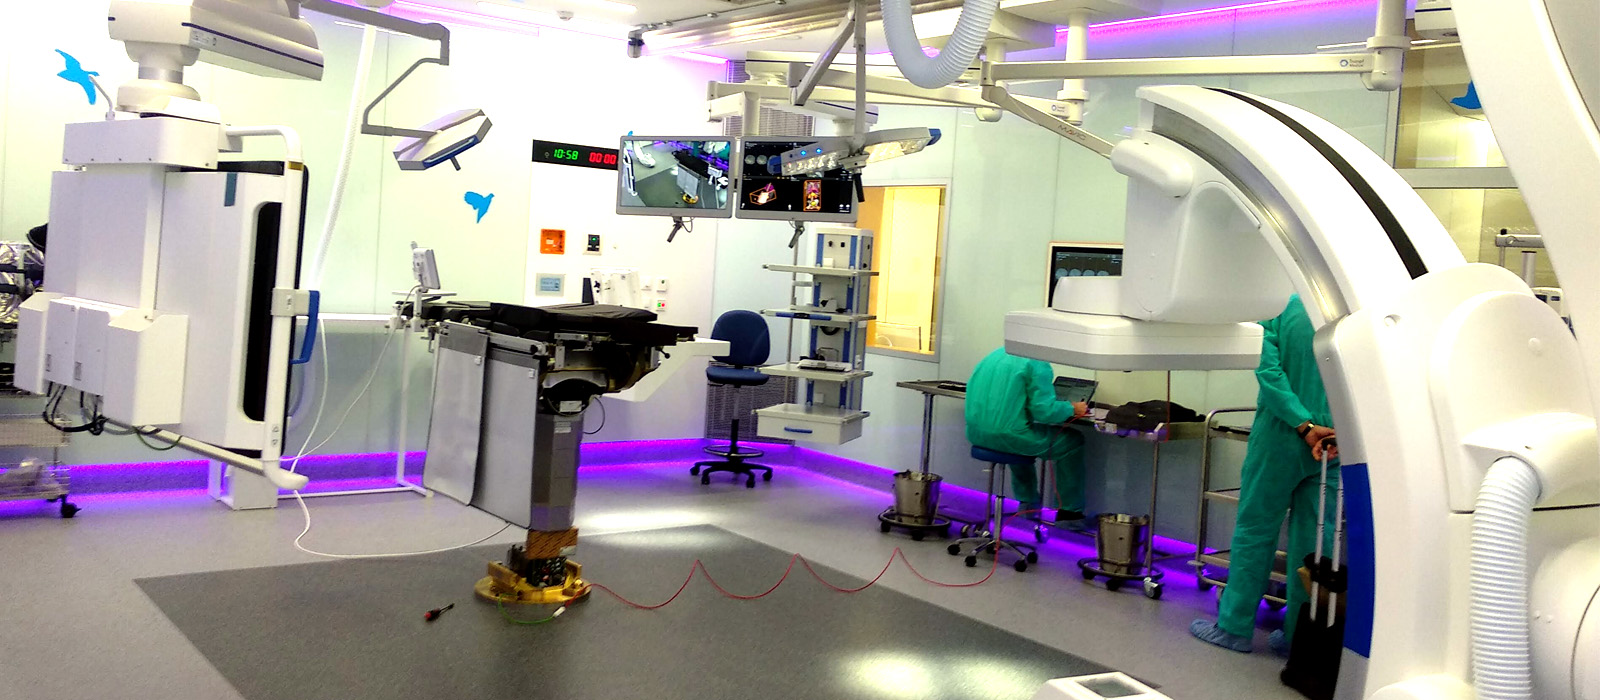 New surgical theatres at Sant Joan de Deu Hospital in Barcelona